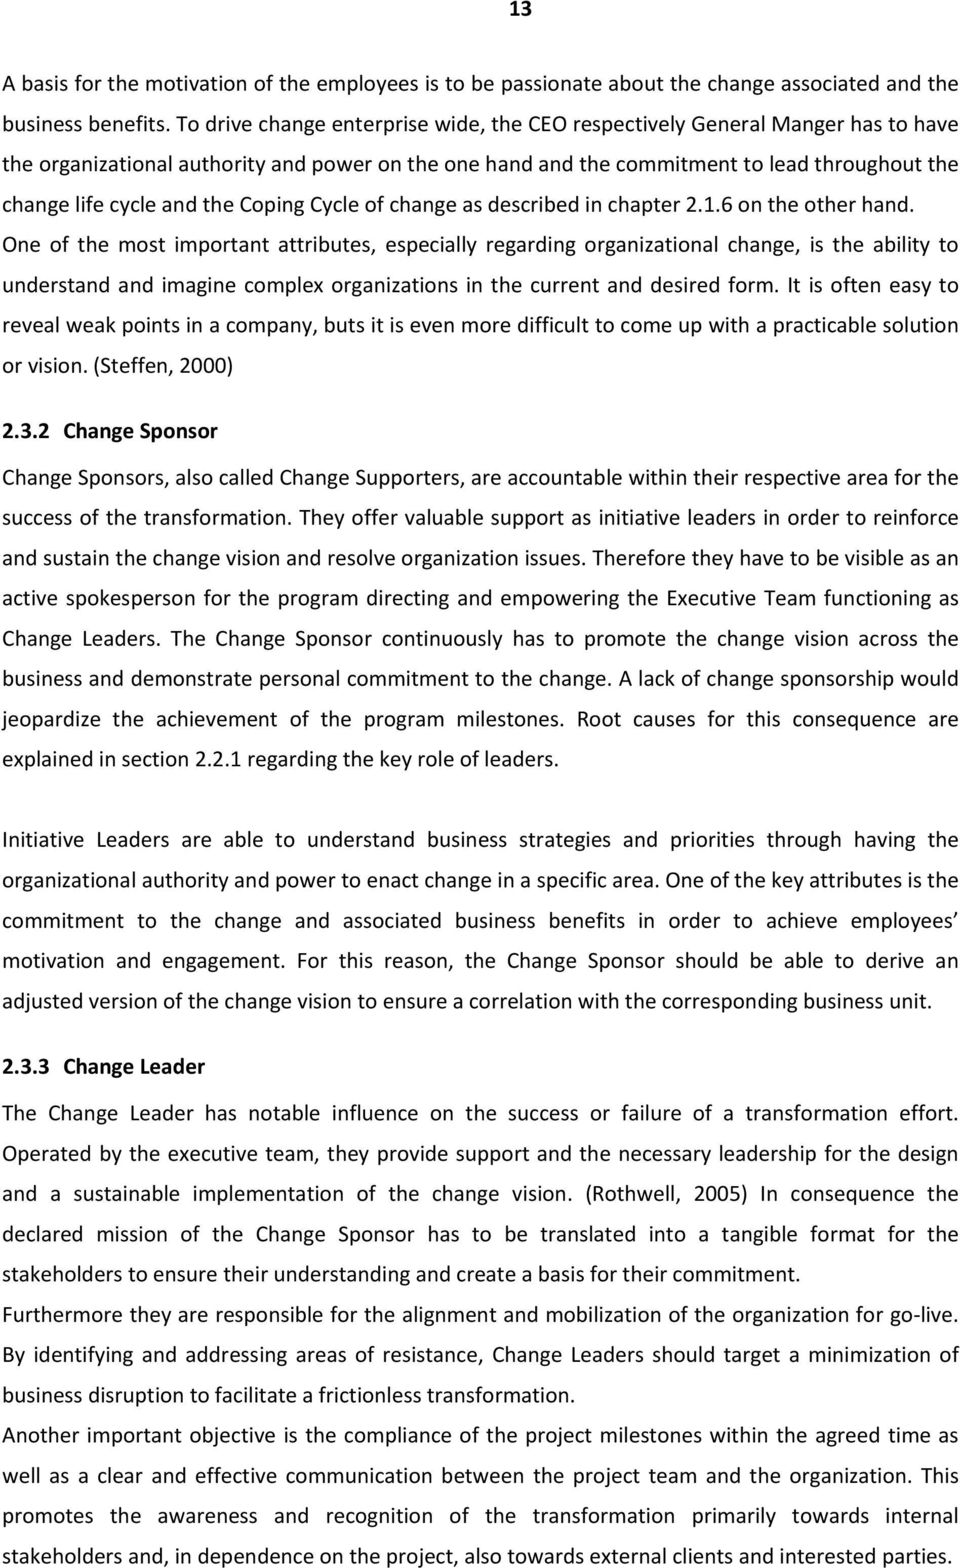 the Coping Cycle of change as described in chapter 2.1.6 on the other hand.